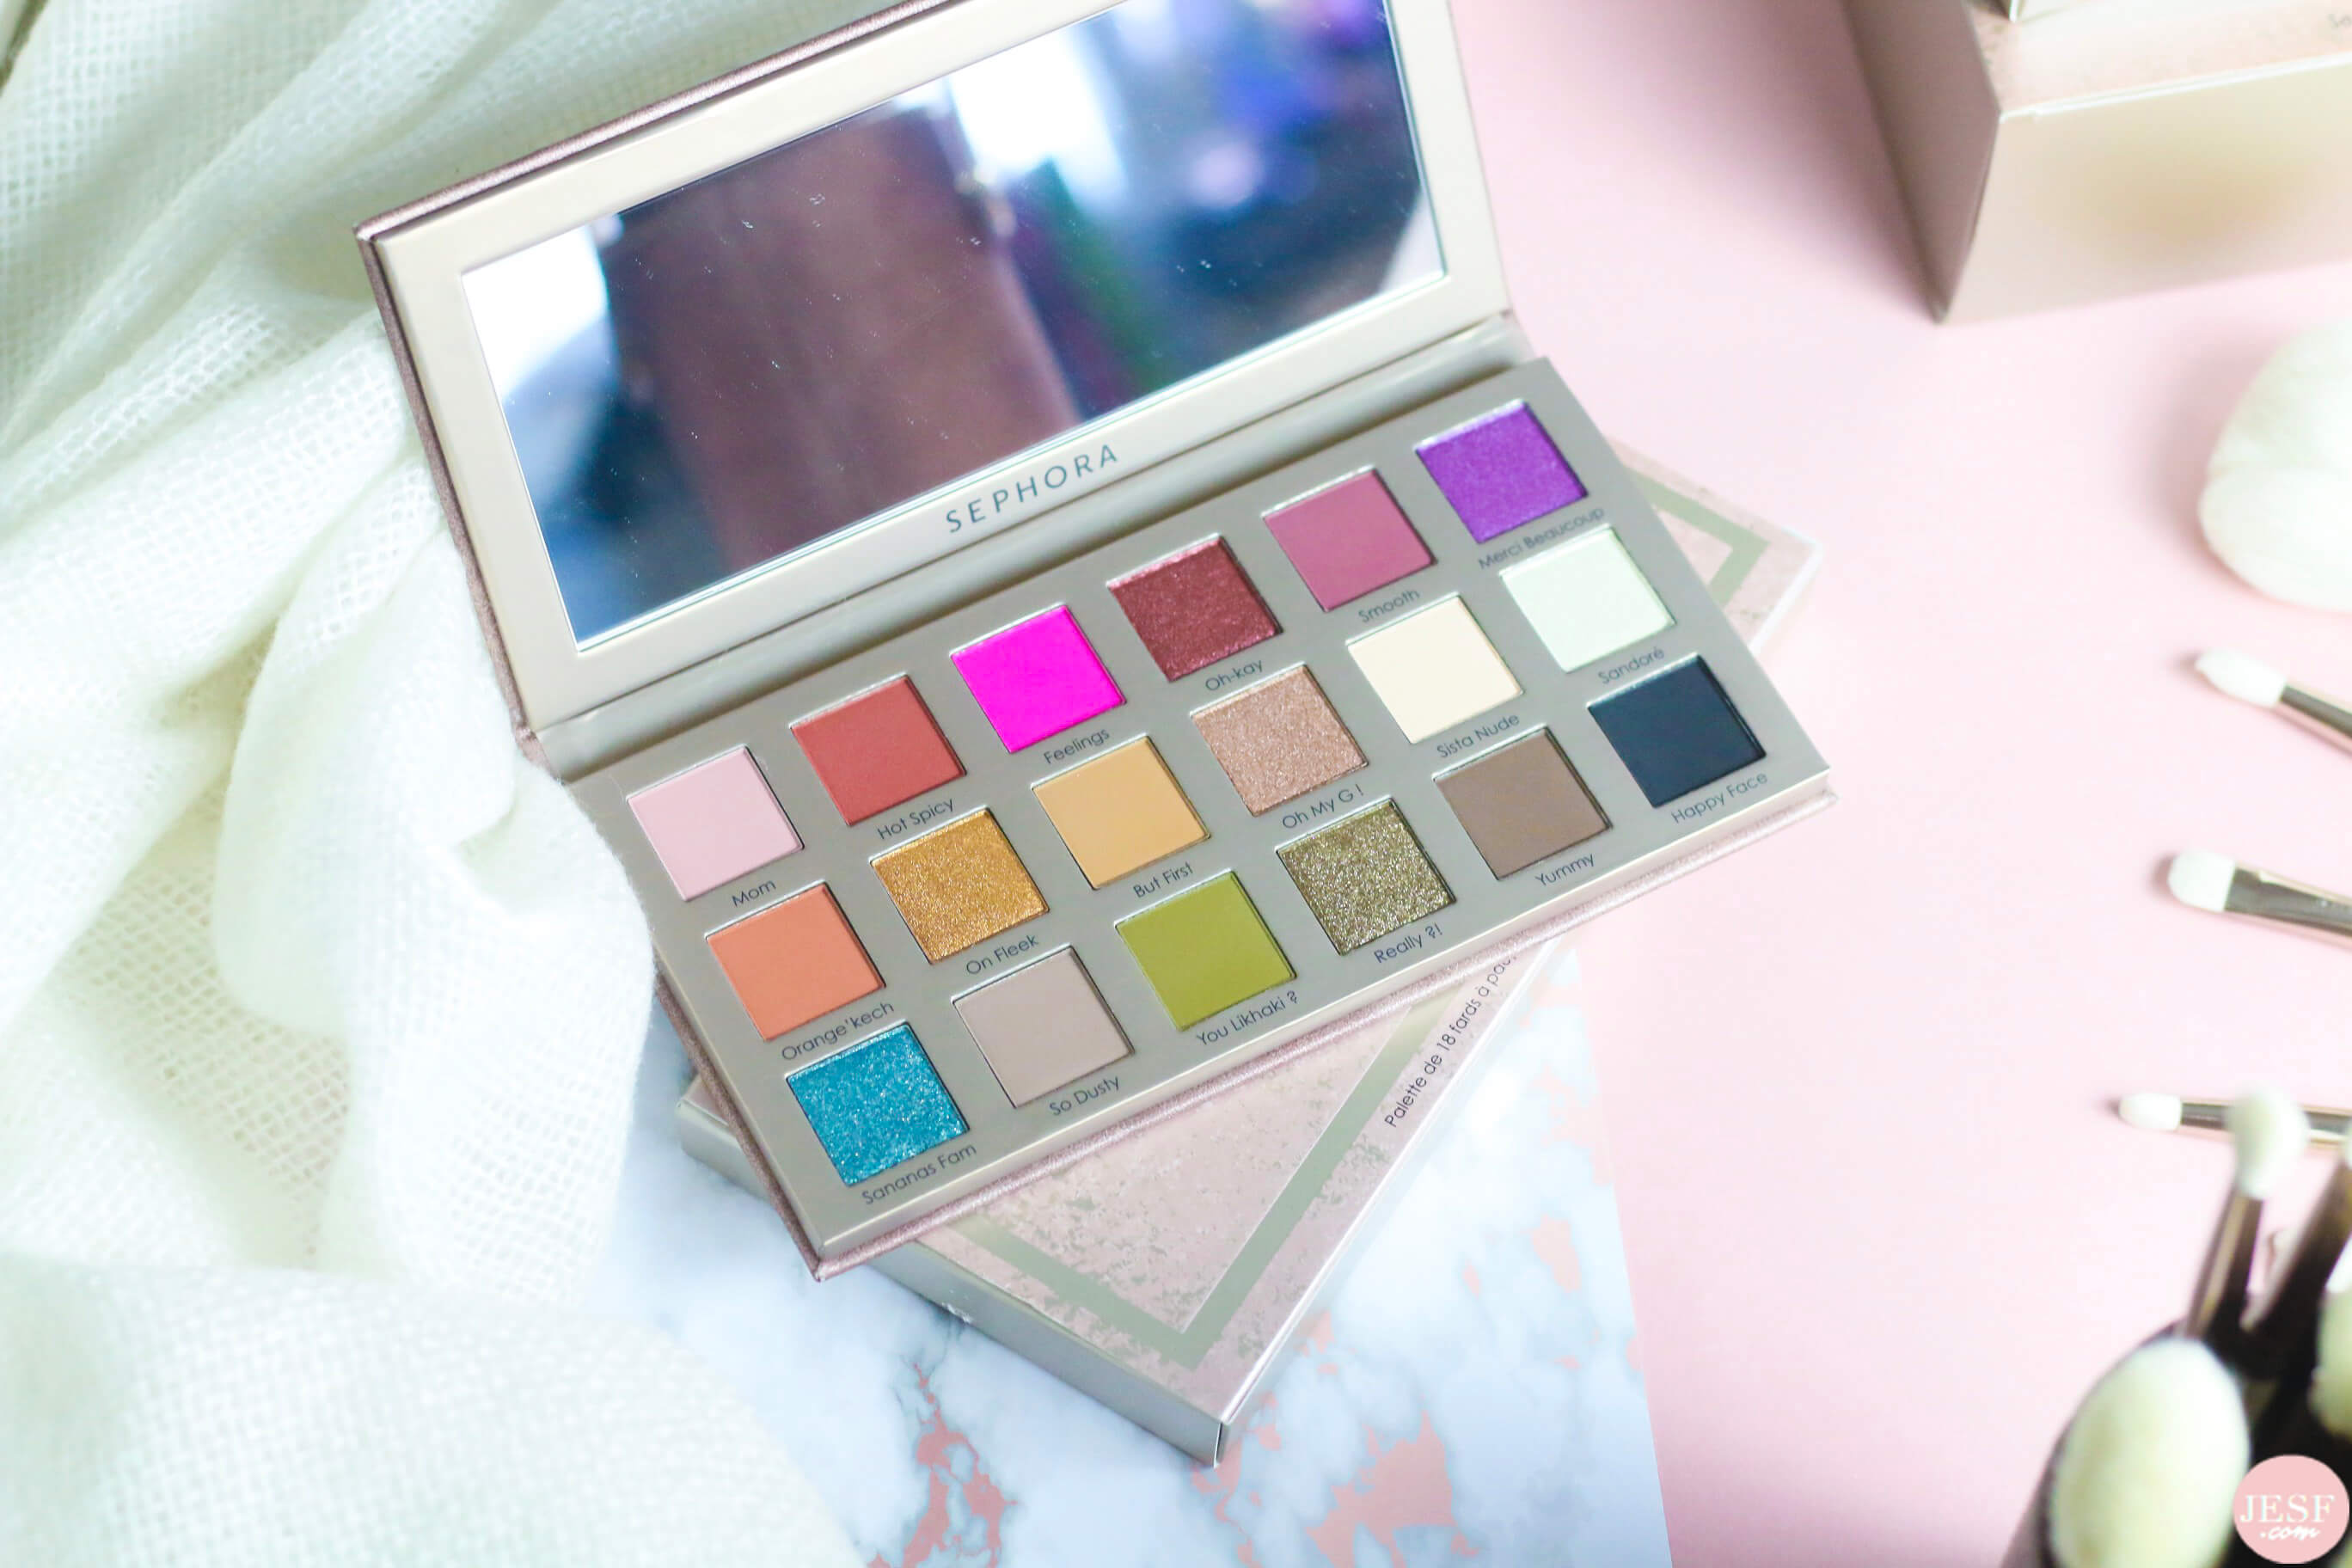 sananas-sephora-collection-makeup-avis-test-swatch-pinceaux-palette(2)